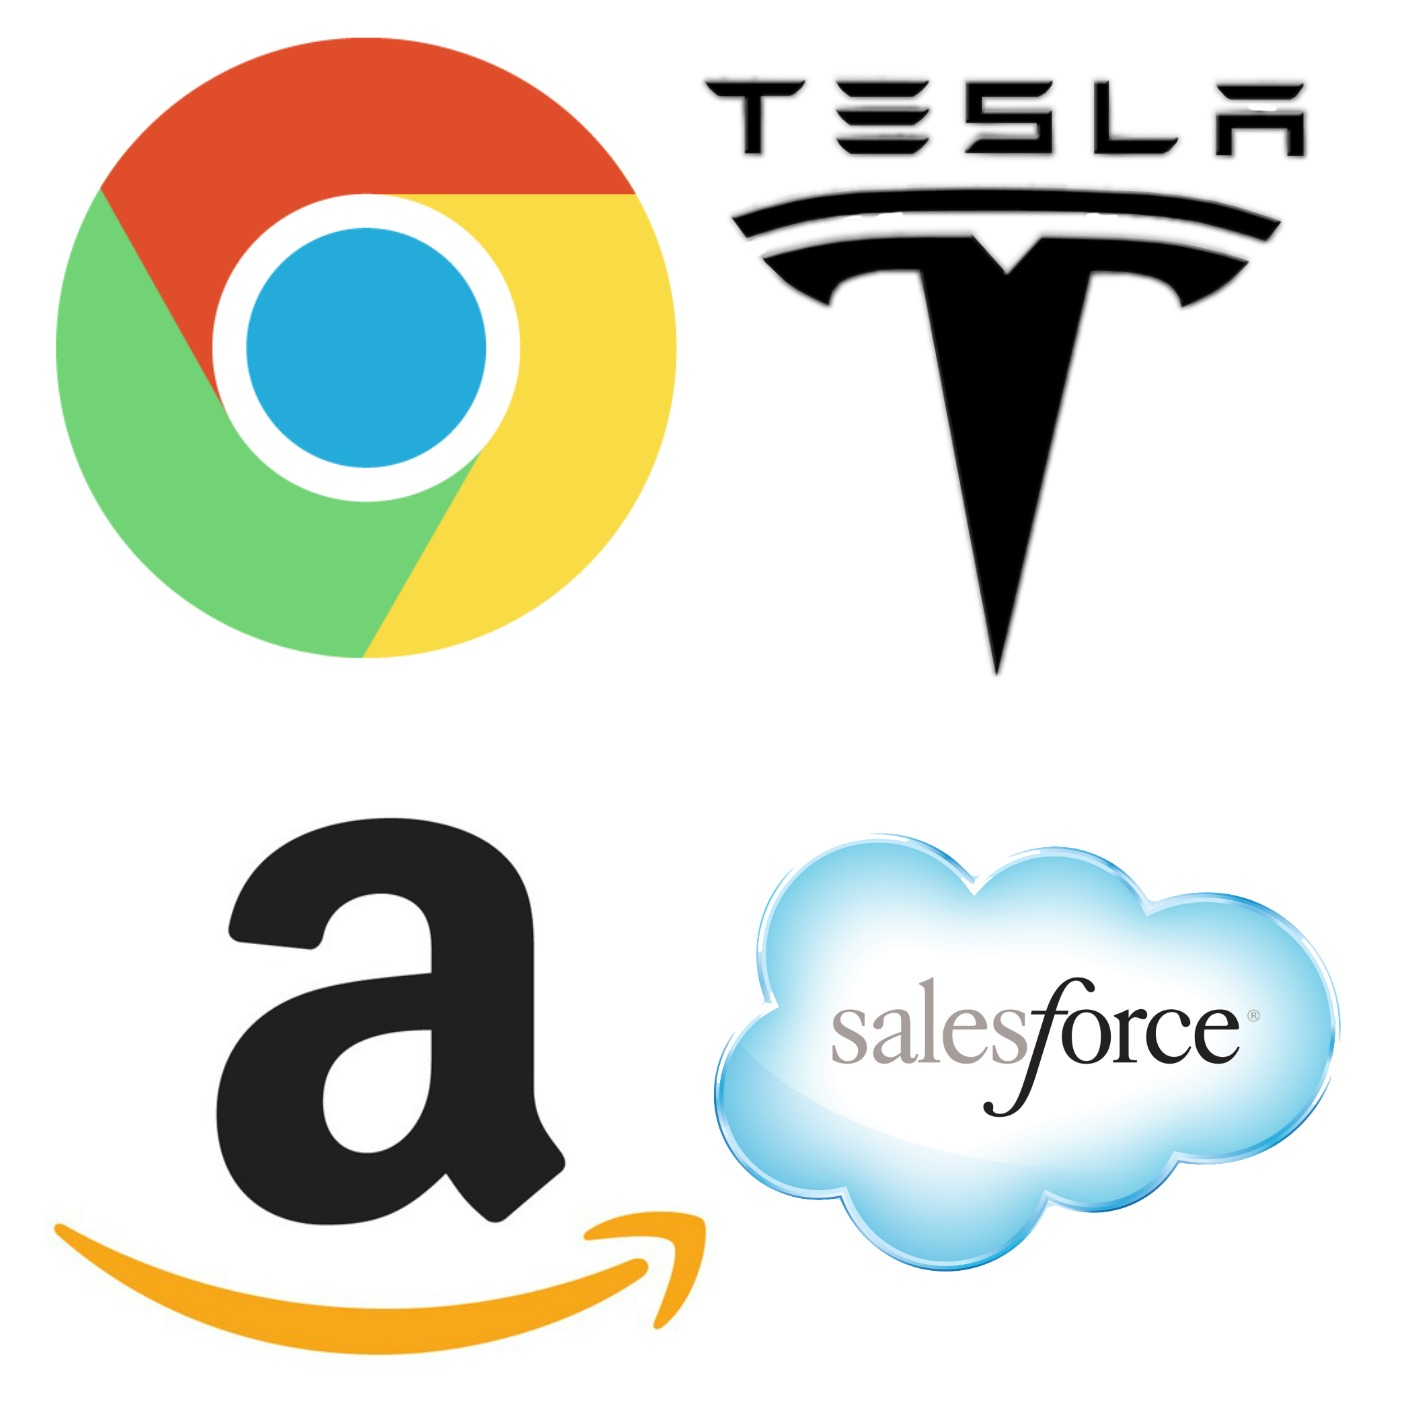 Does Your Logo Have $$ Value? A Lesson in Great Aerospace Branding